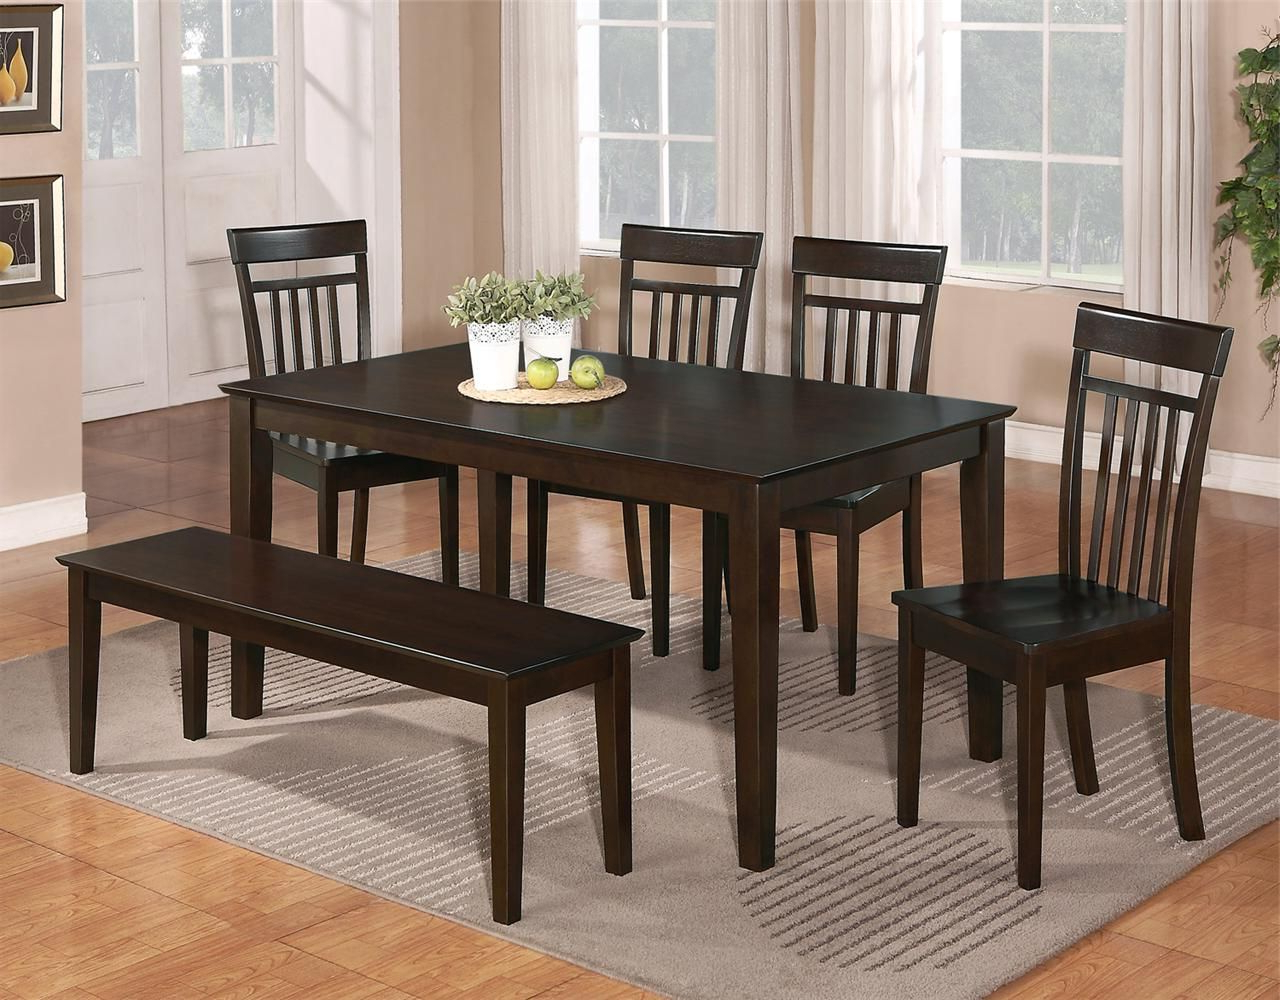 Most Popular Cappuccino Finish Wood Classic Casual Dining Tables Intended For Details About The Room Style 7Pc Cappuccino Dining Room (View 19 of 30)